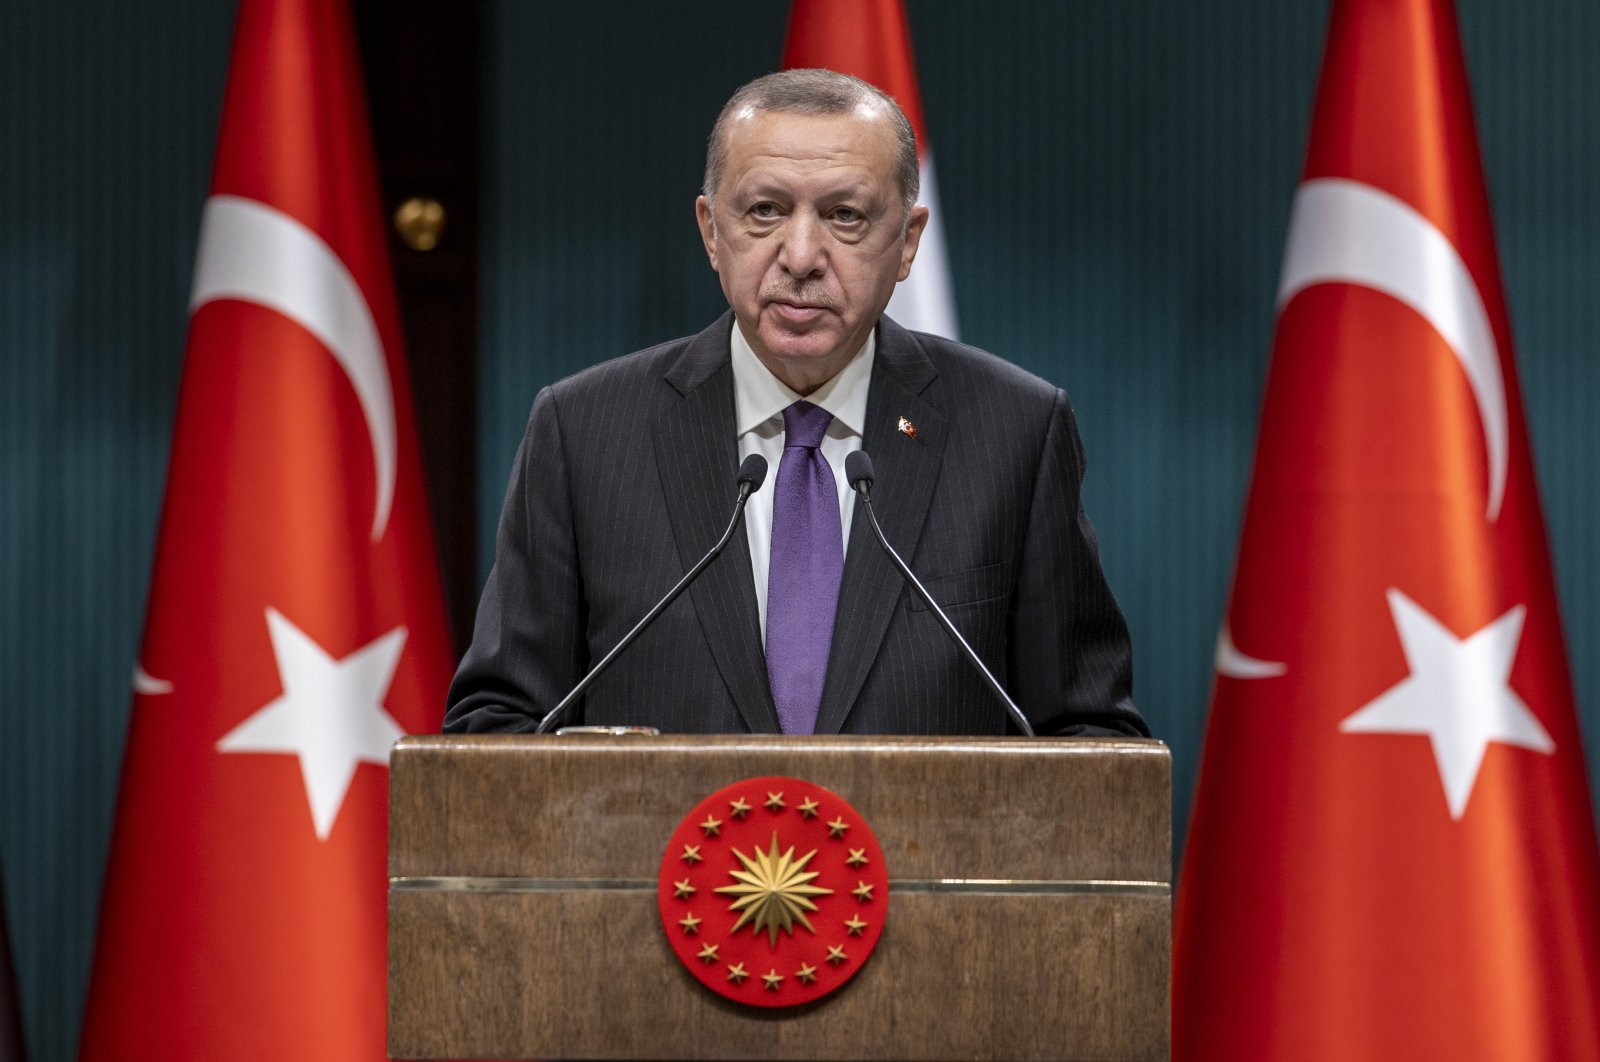 President Recep Tayyip Erdoğan speaks in a news conference in the Presidential Complex in Ankara, Istanbul, Dec. 18, 2020. (AA File Photo)